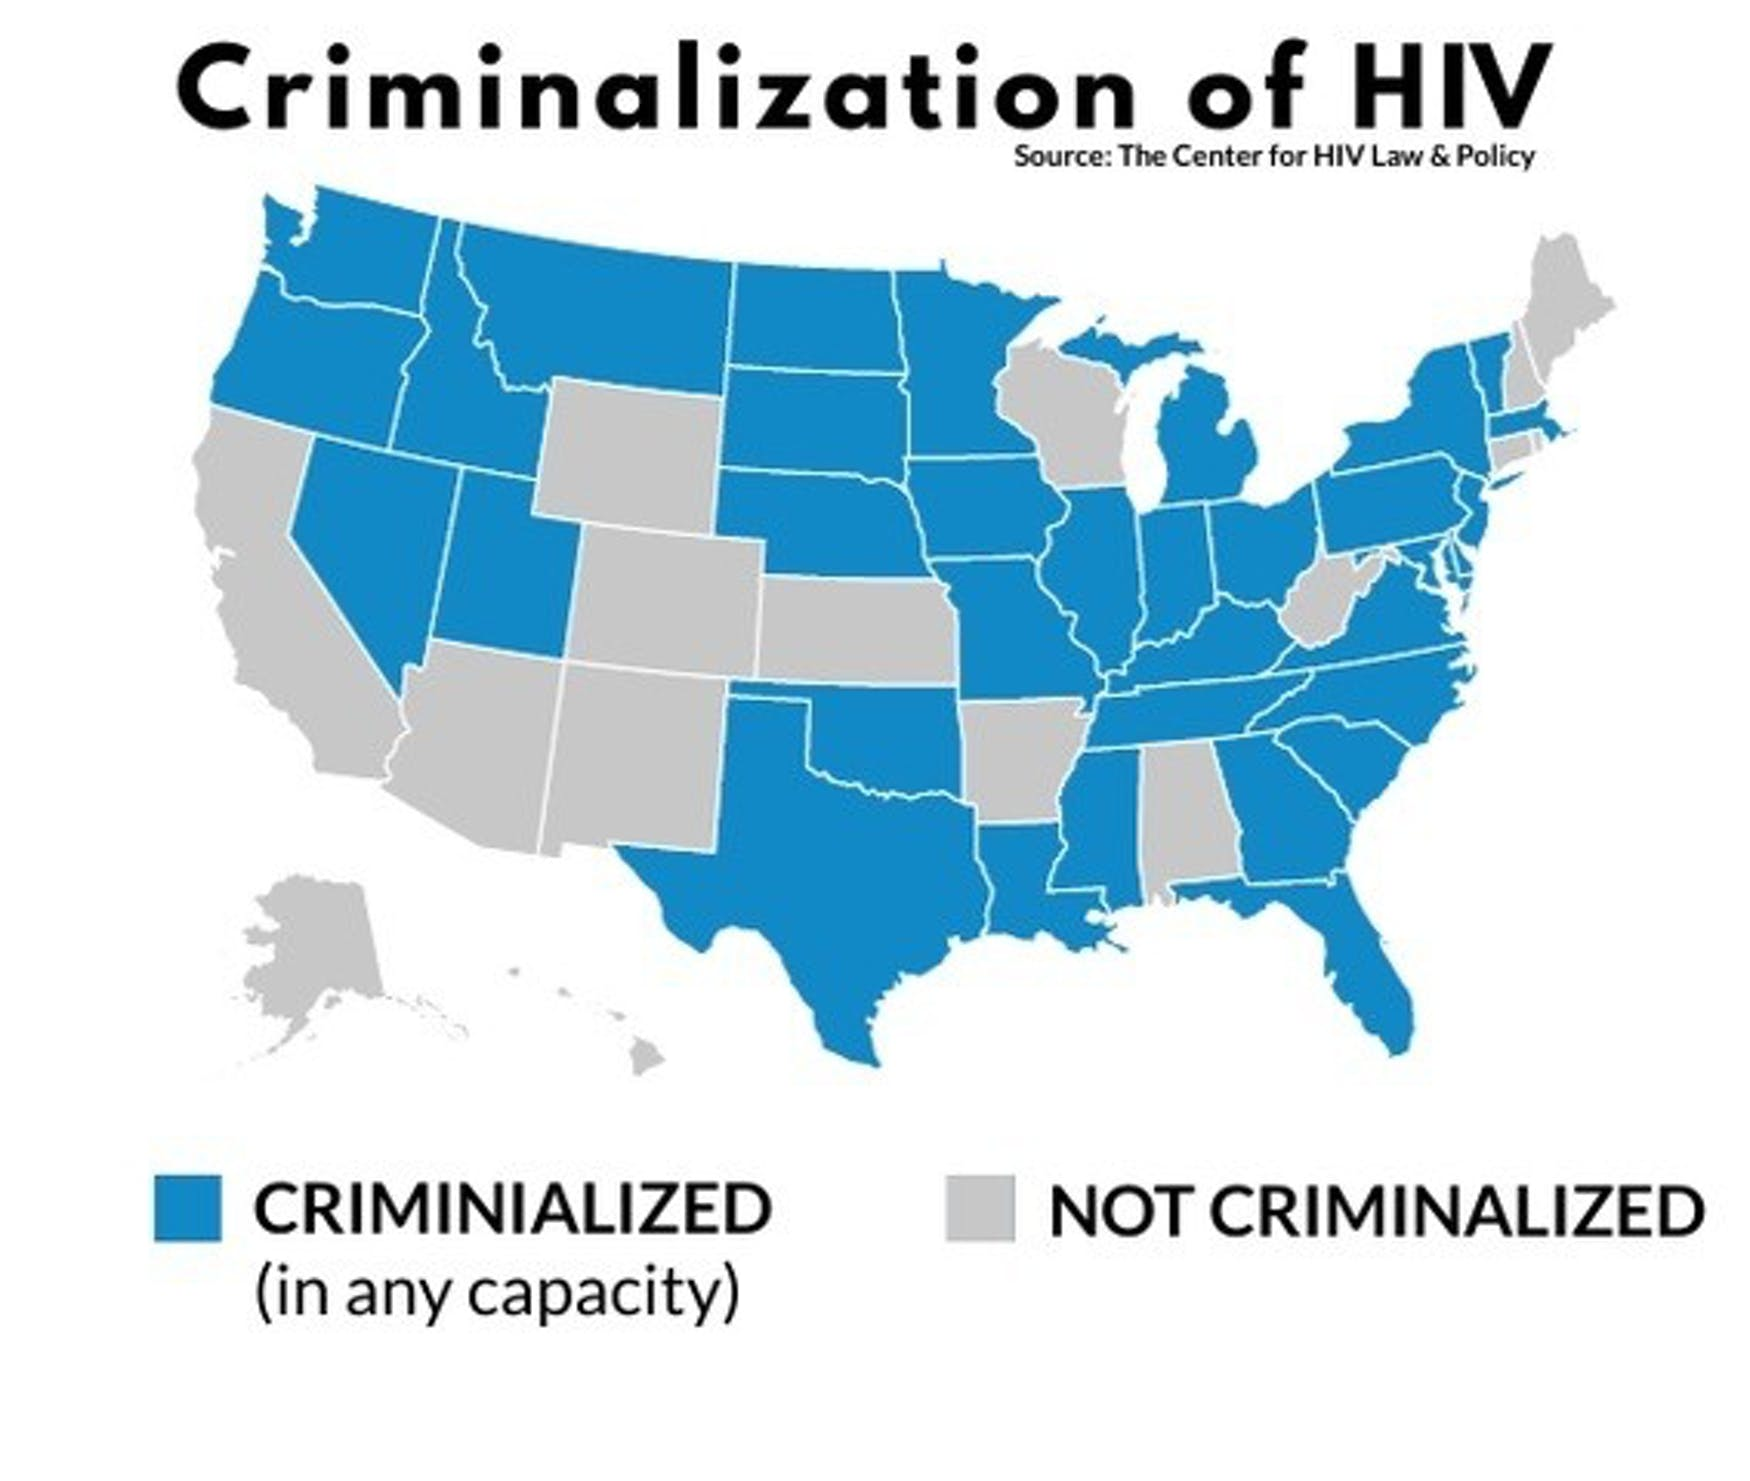 criminalization-of-hiv-map